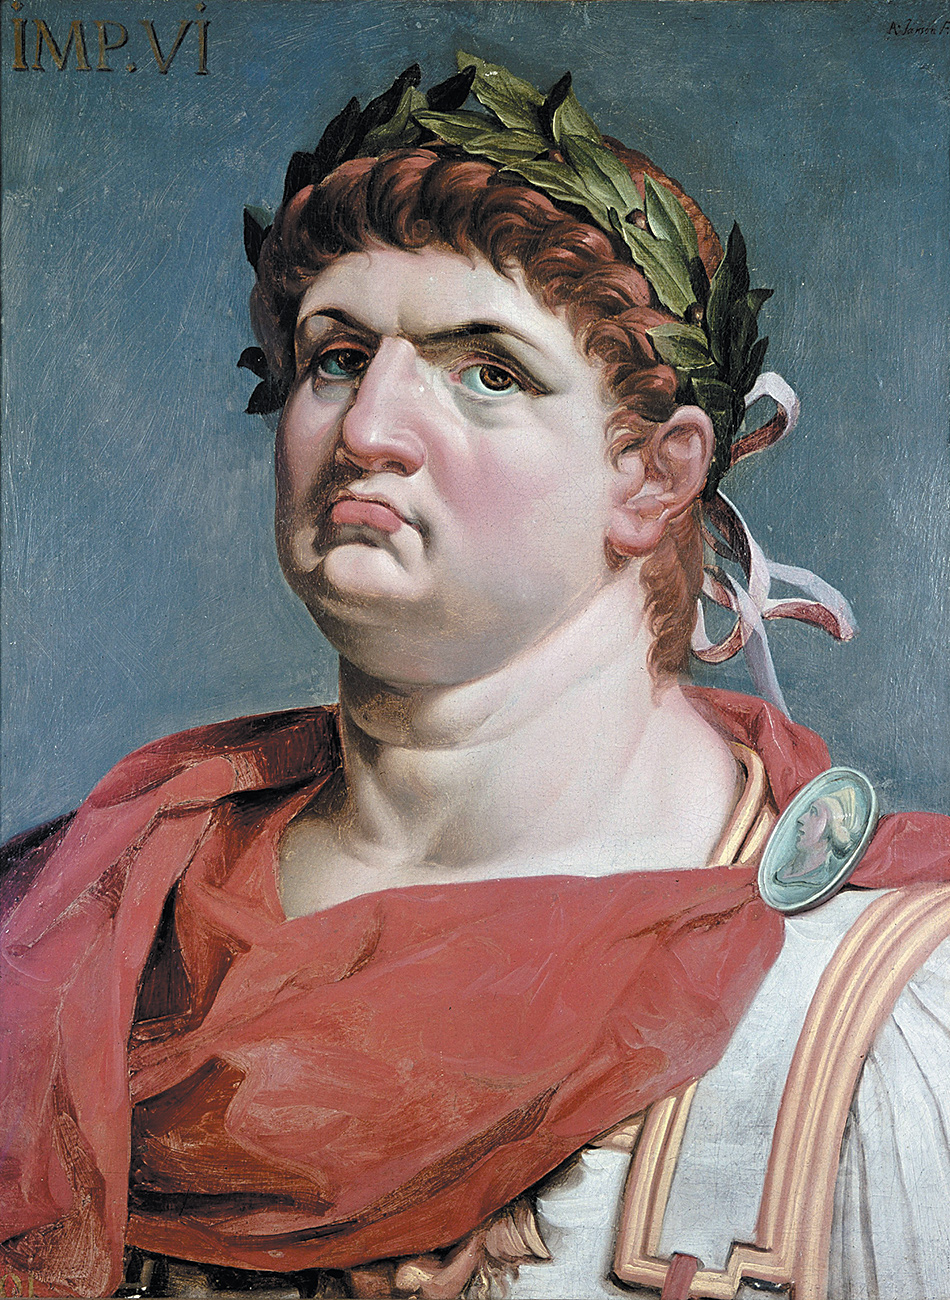 Emperor Nero; painting by Abraham Janssens, 1618